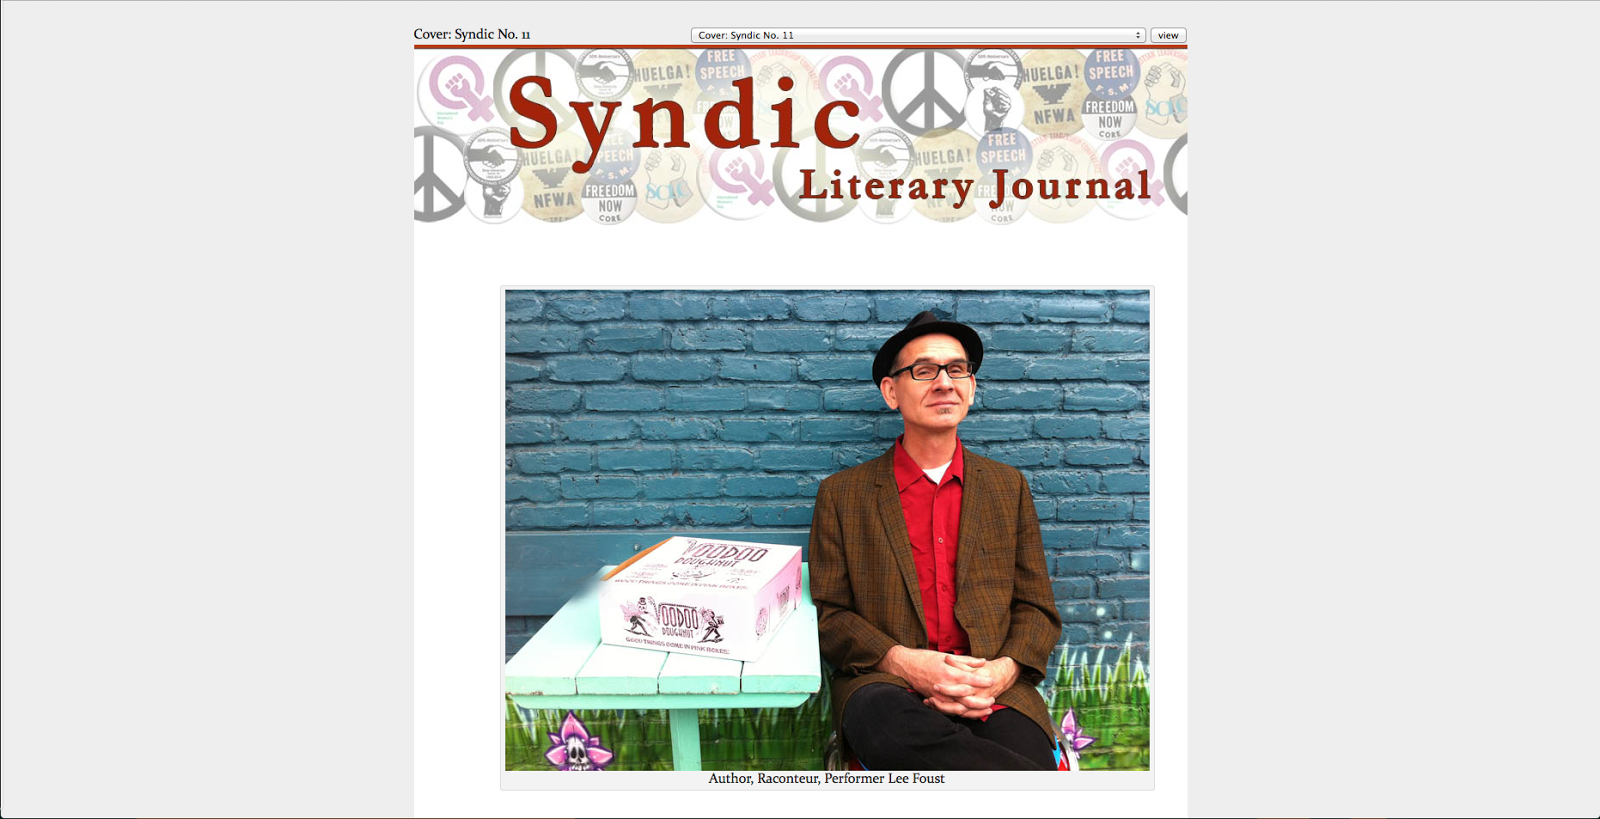 http://syndicjournal.us/cover-syndic-no-11/spoken-word-story-by-lee-foust/